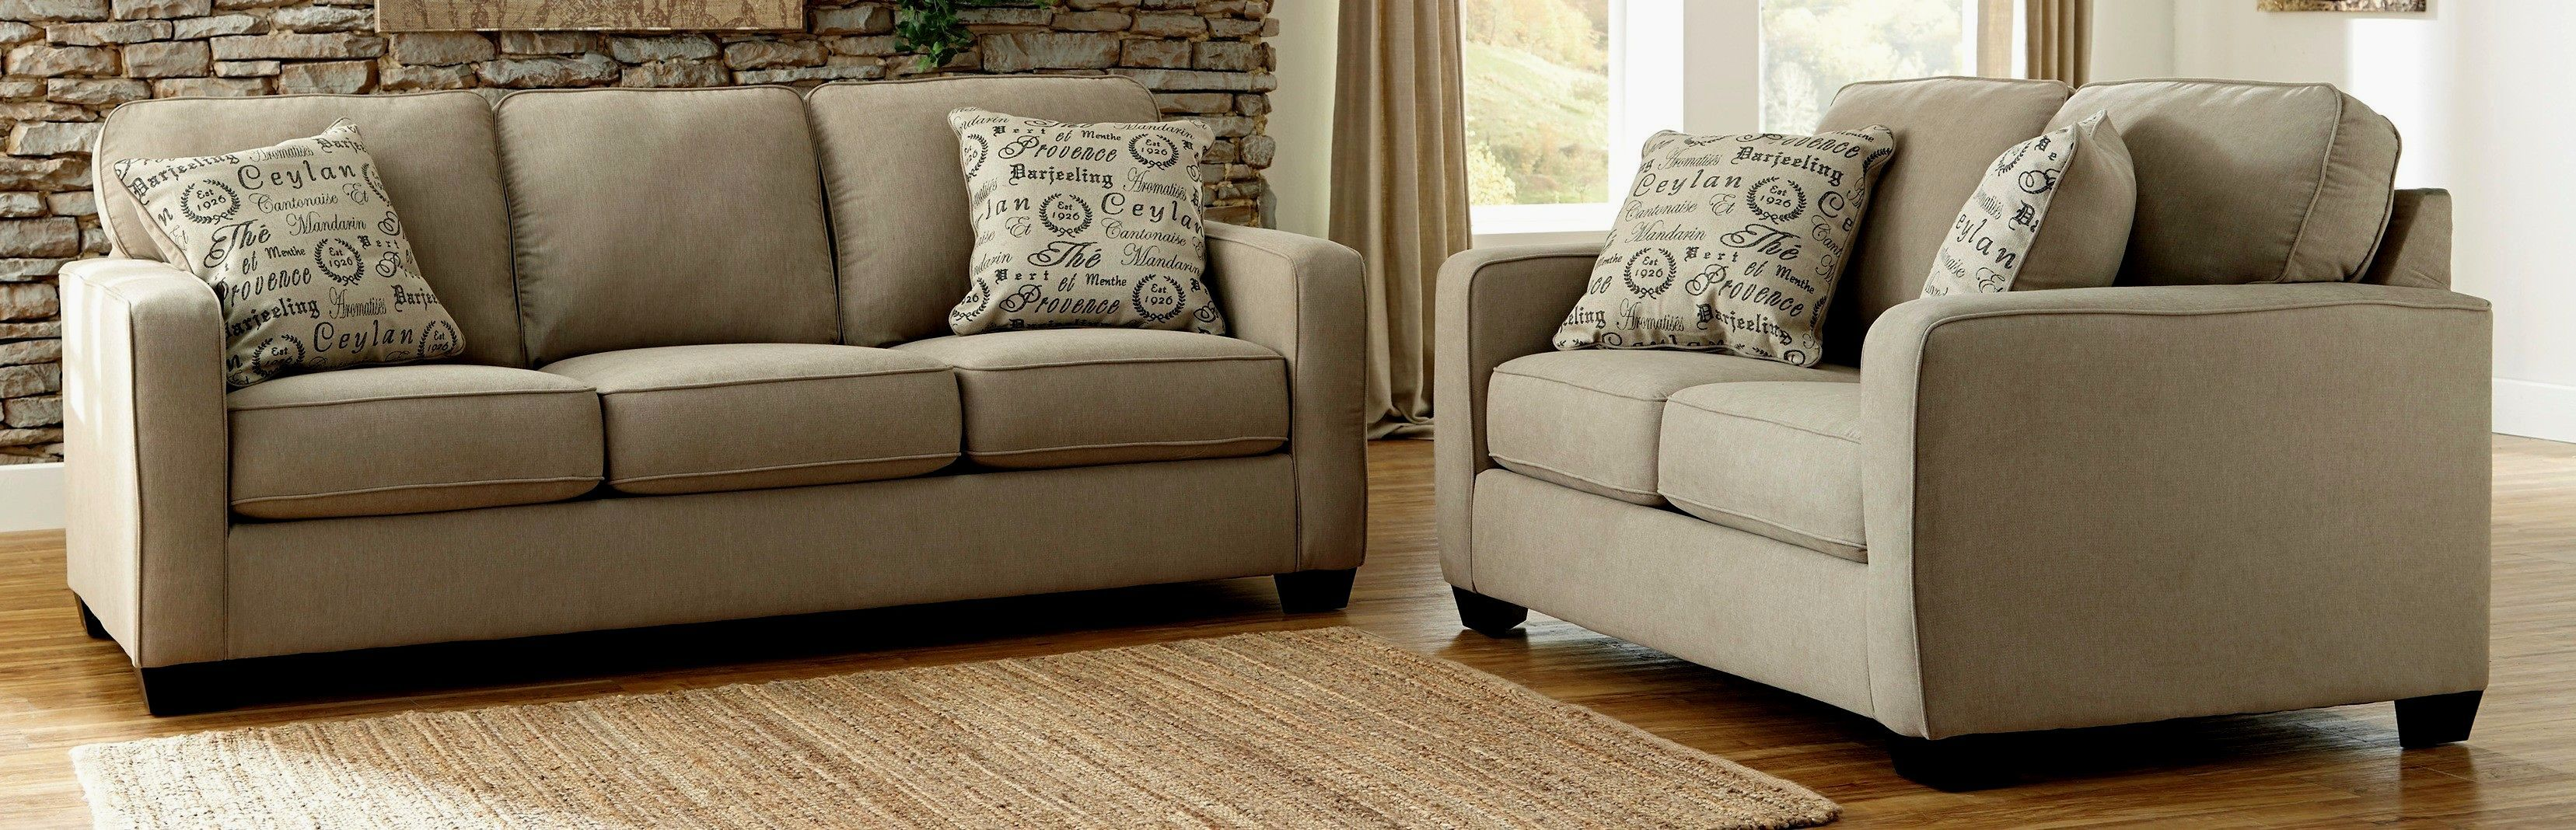 beautiful sleeper sofas for sale model-Lovely Sleeper sofas for Sale Wallpaper